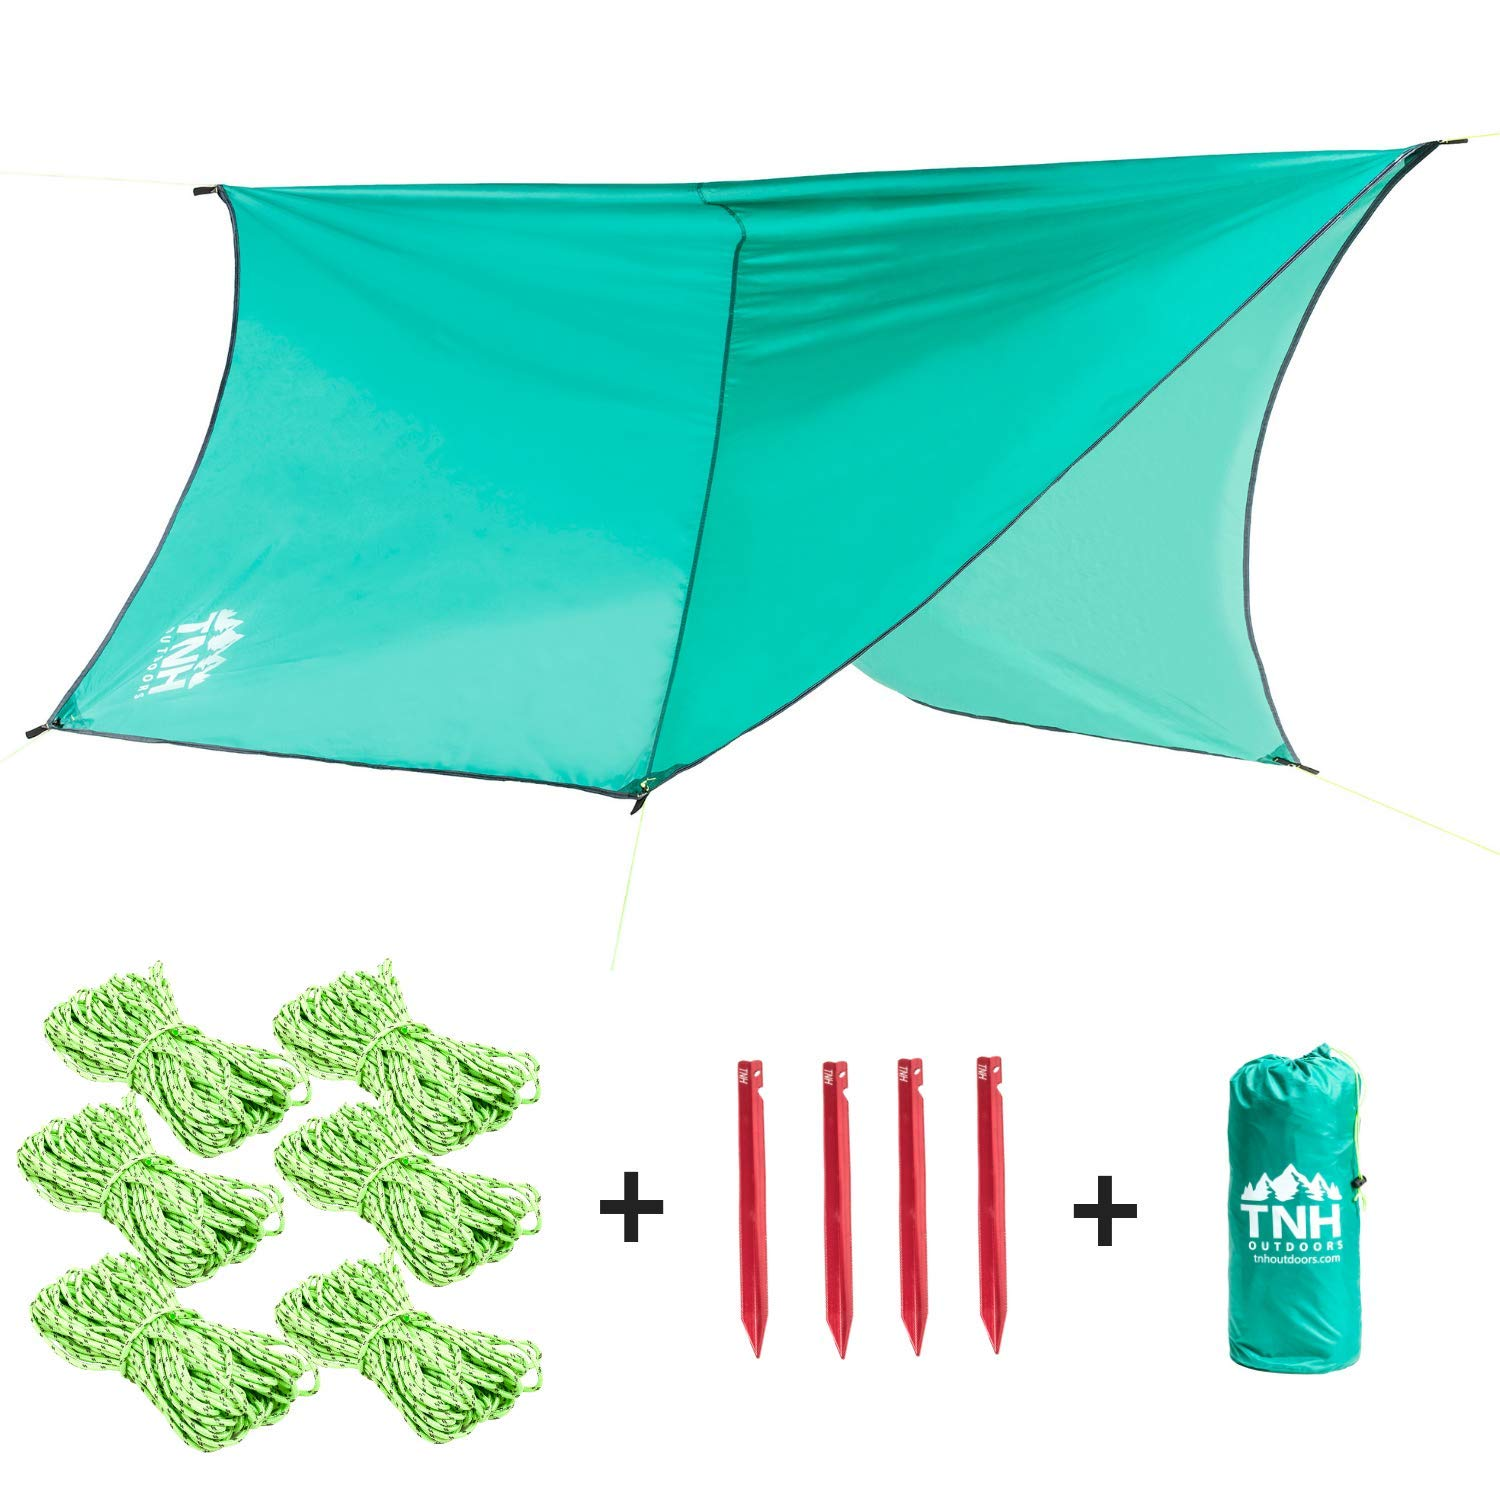 TNH Outdoors Rakaia Designs Hexagon Waterproof Rain Fly Tent Tarp with Stakes Included - Easy Set Up Portable Hammock Tarp Shelter - Made of Quality Lightweight Waterproof Tent Polyester by TNH Outdoors